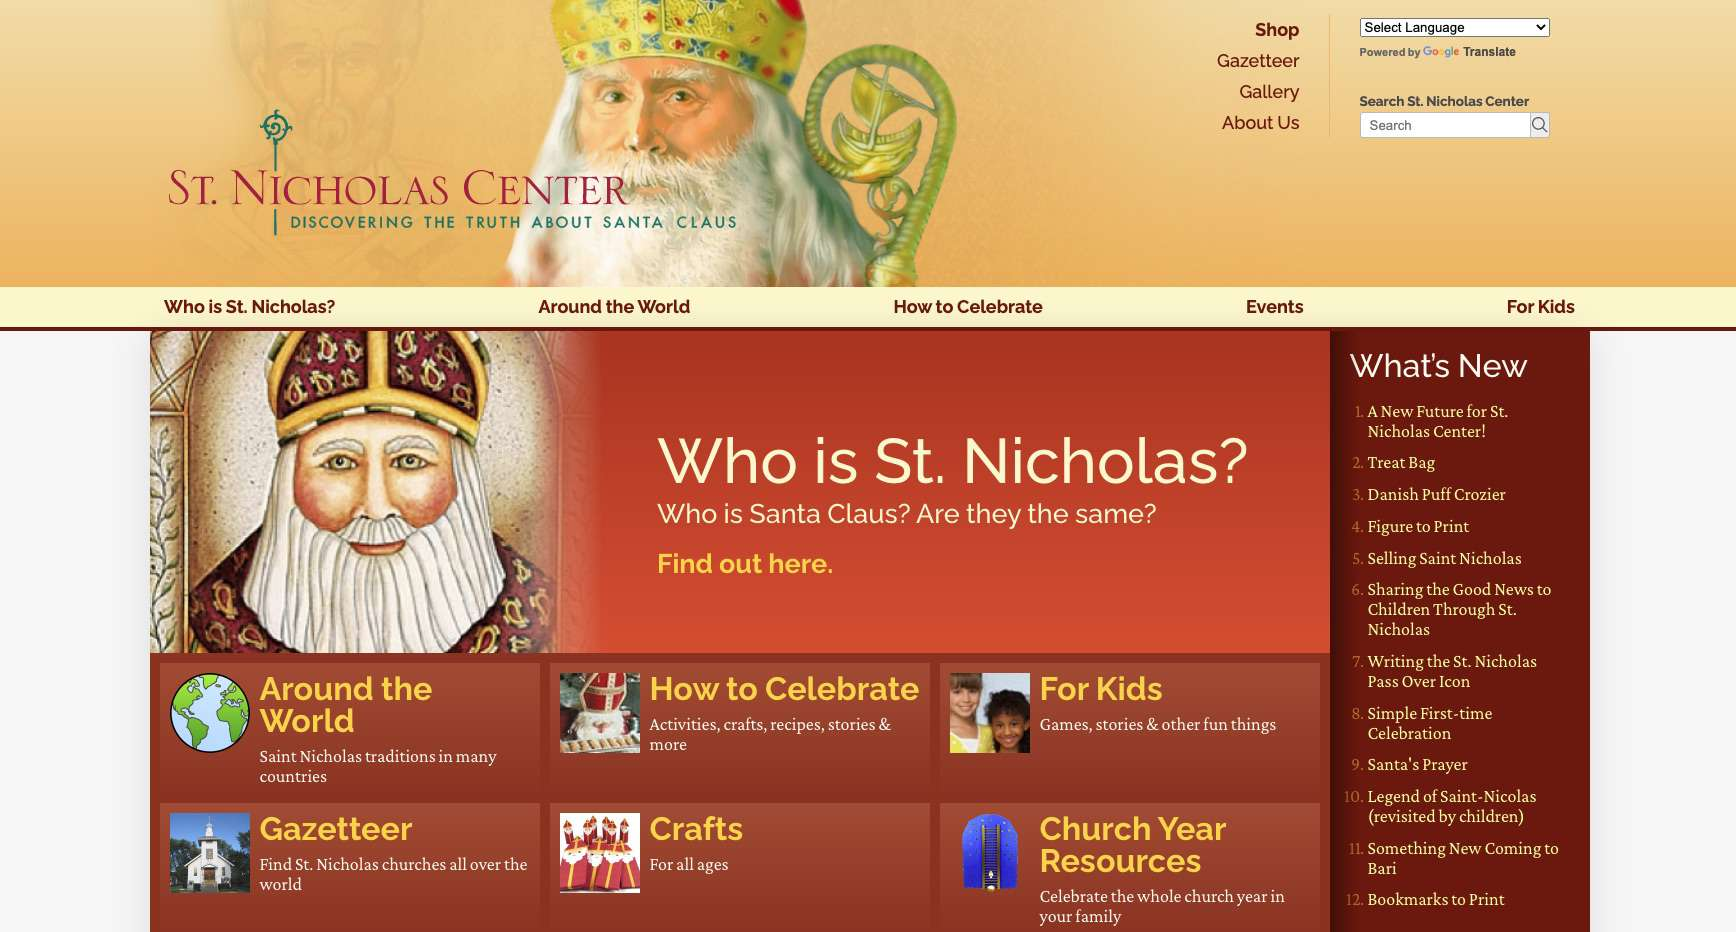 St. Nicholas Center Website for learning about the real Santa Claus